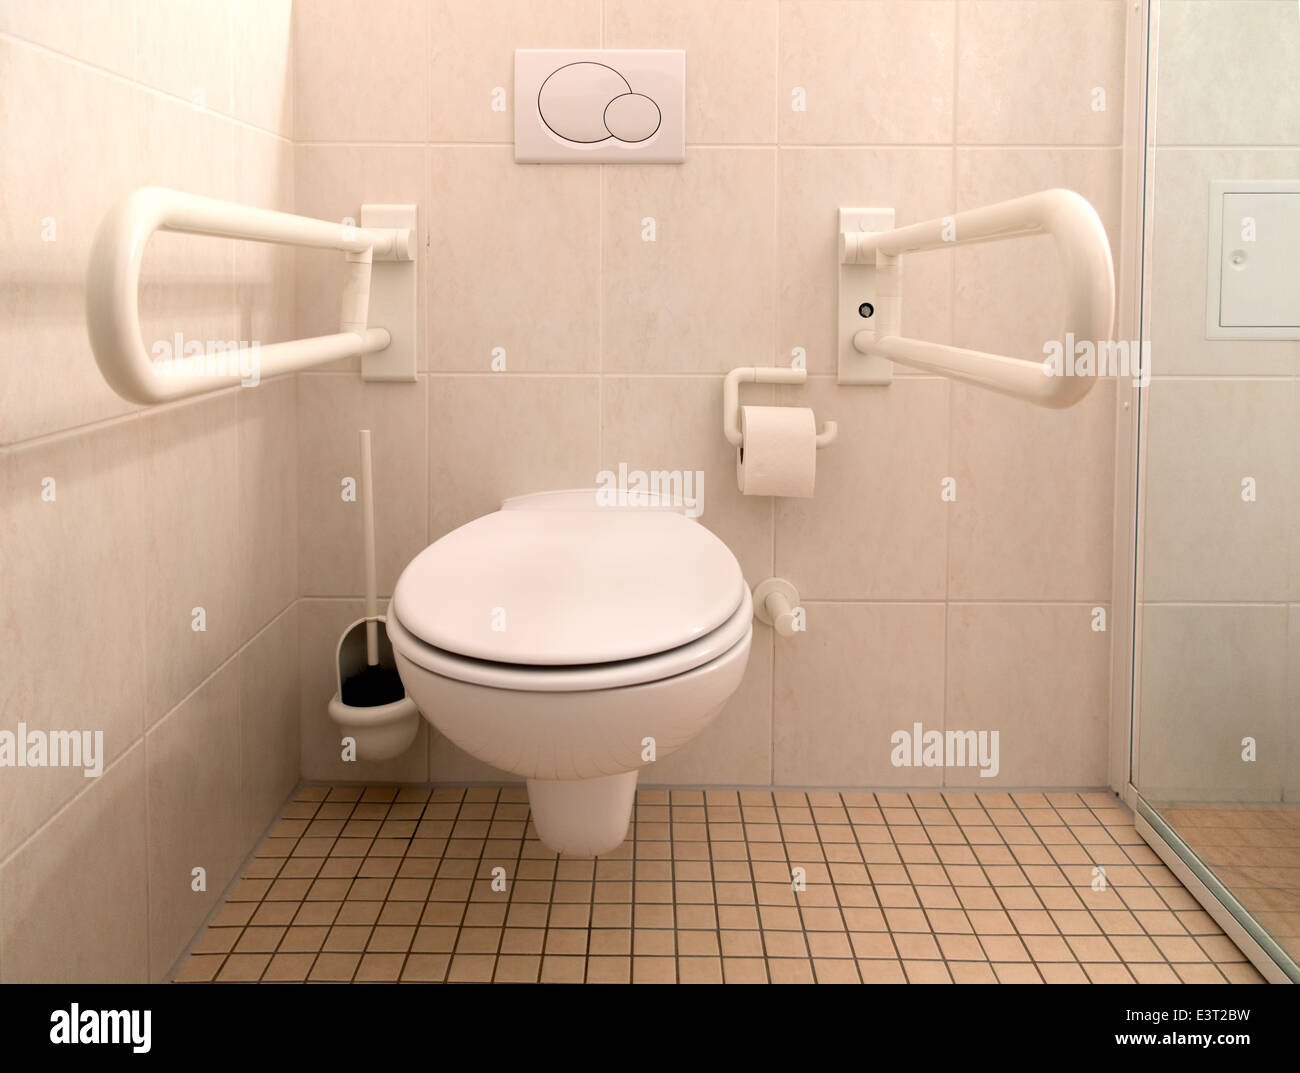 Toilet for disabled people stock photo royalty free image - Toilet for handicapped person ...